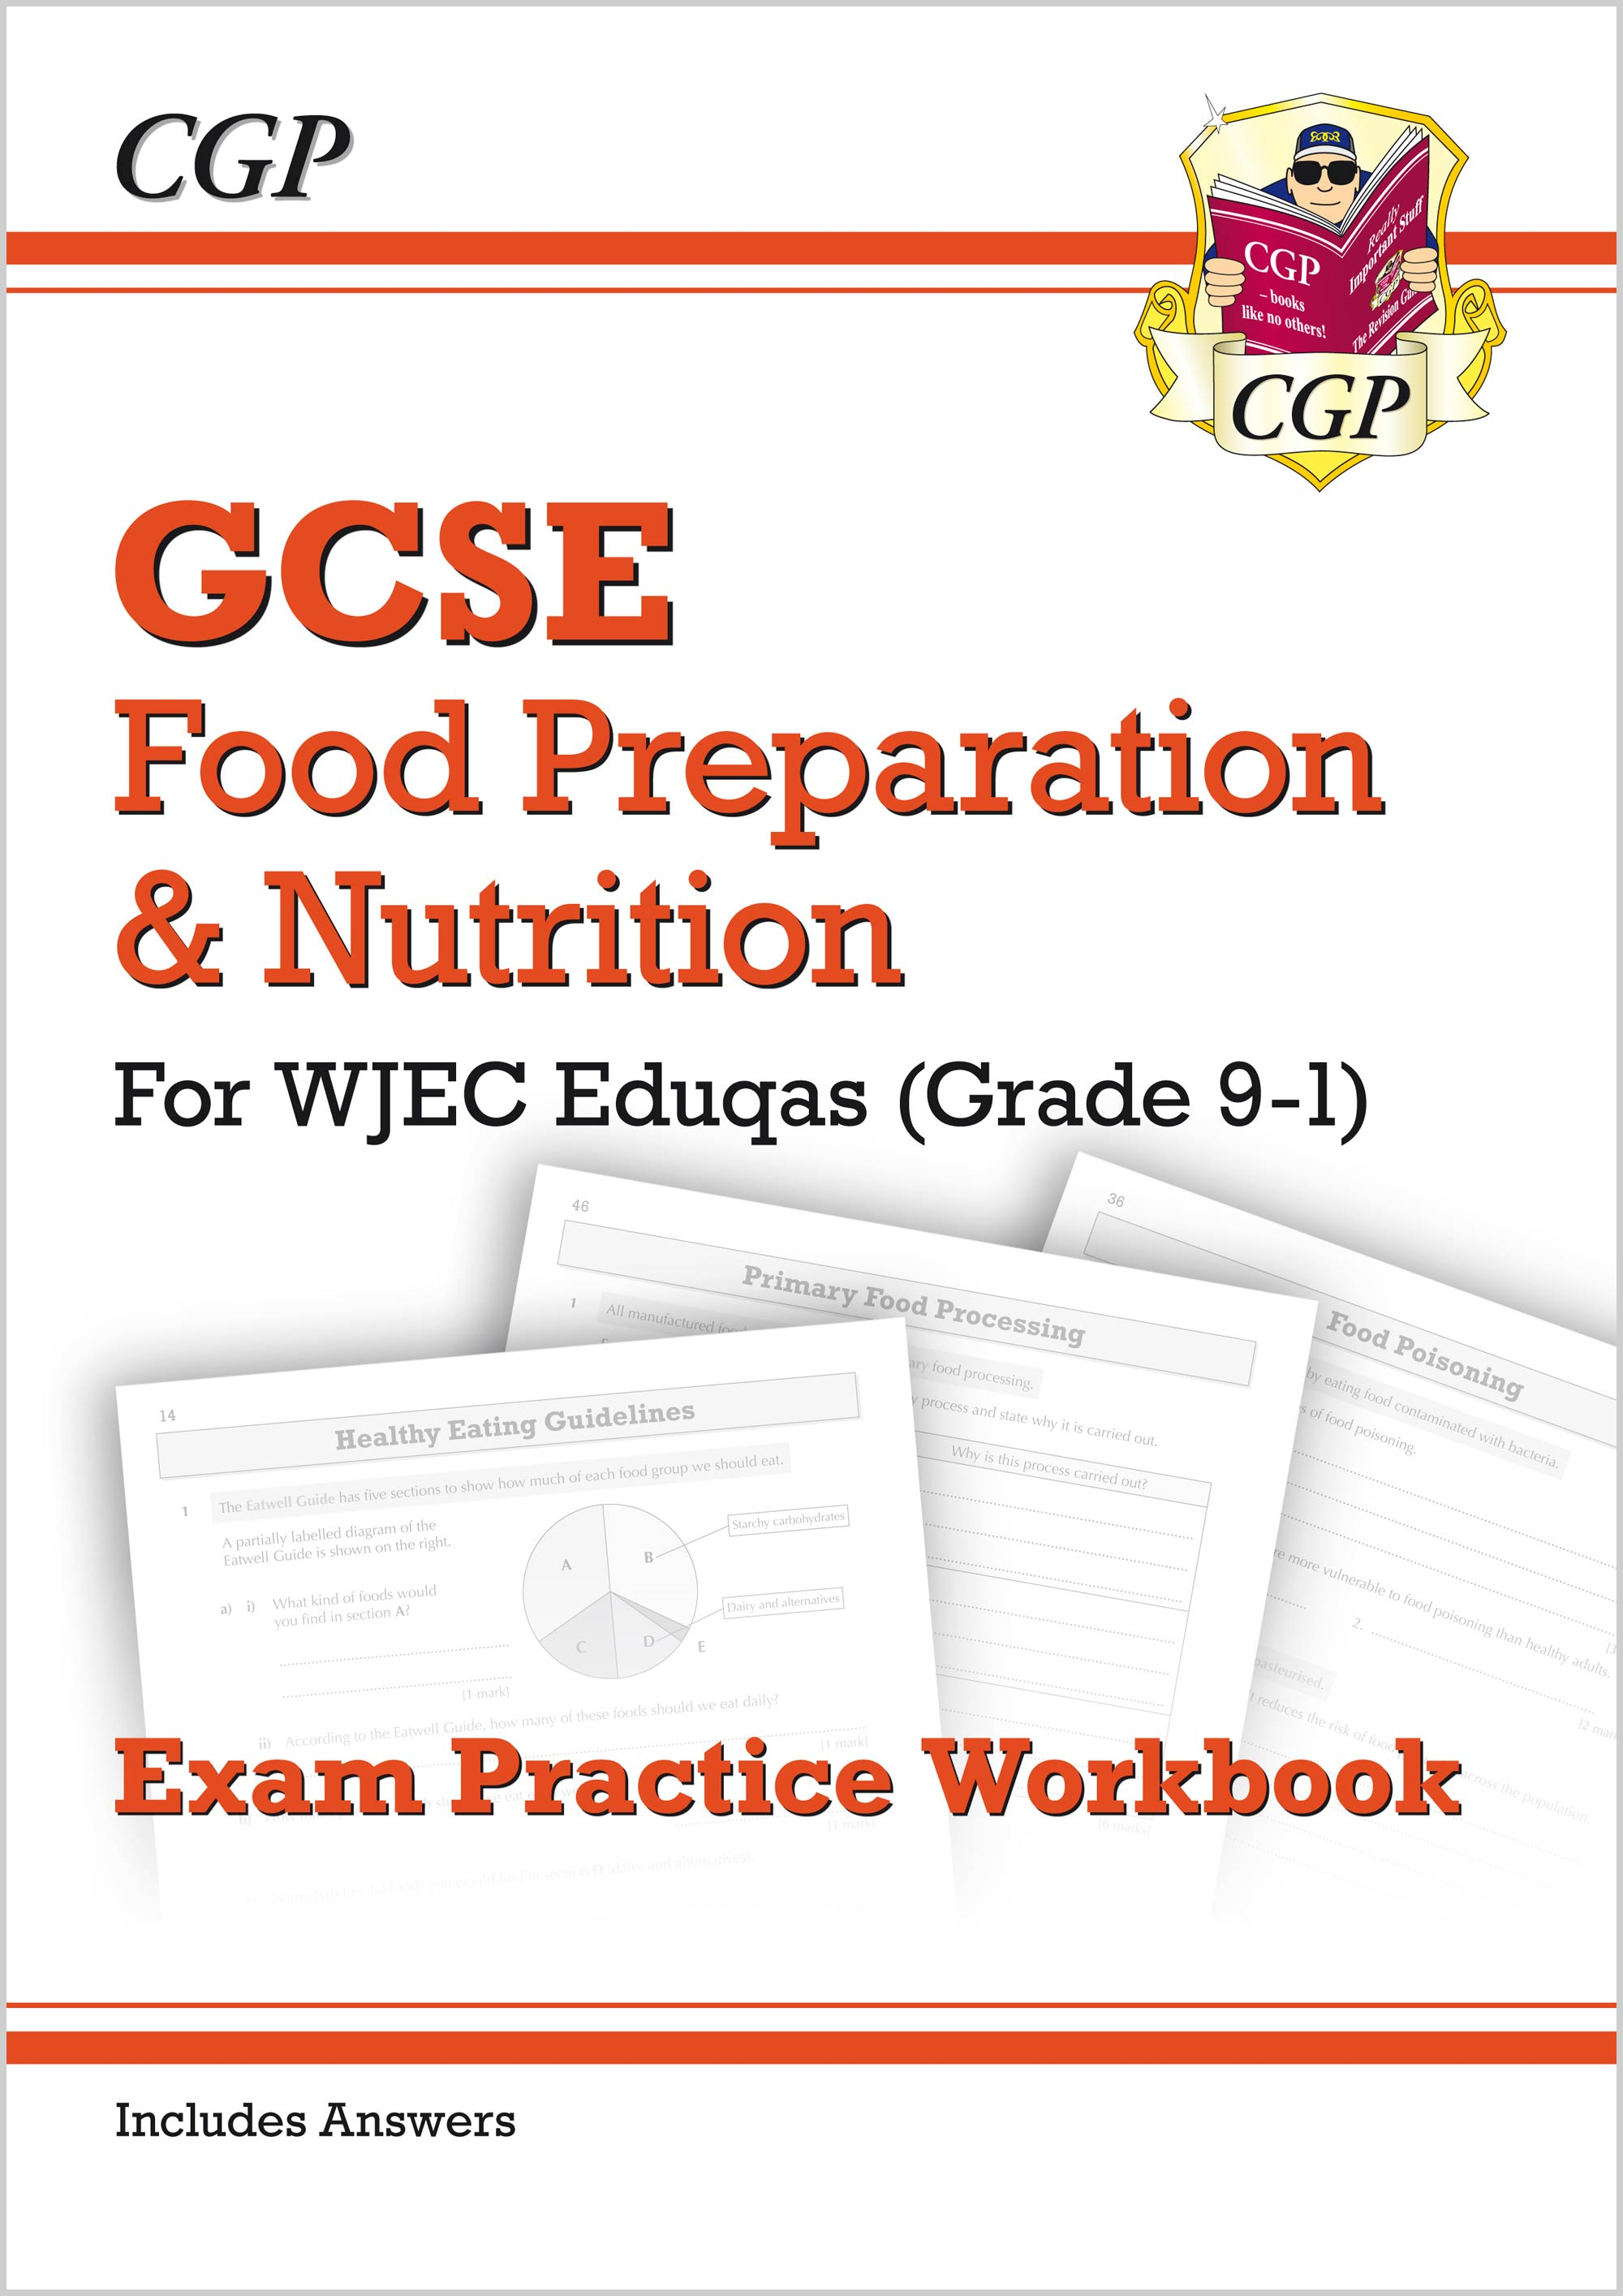 FNWQ41 - New Grade 9-1 GCSE Food Preparation & Nutrition - WJEC Eduqas Exam Practice Workbook (incl.